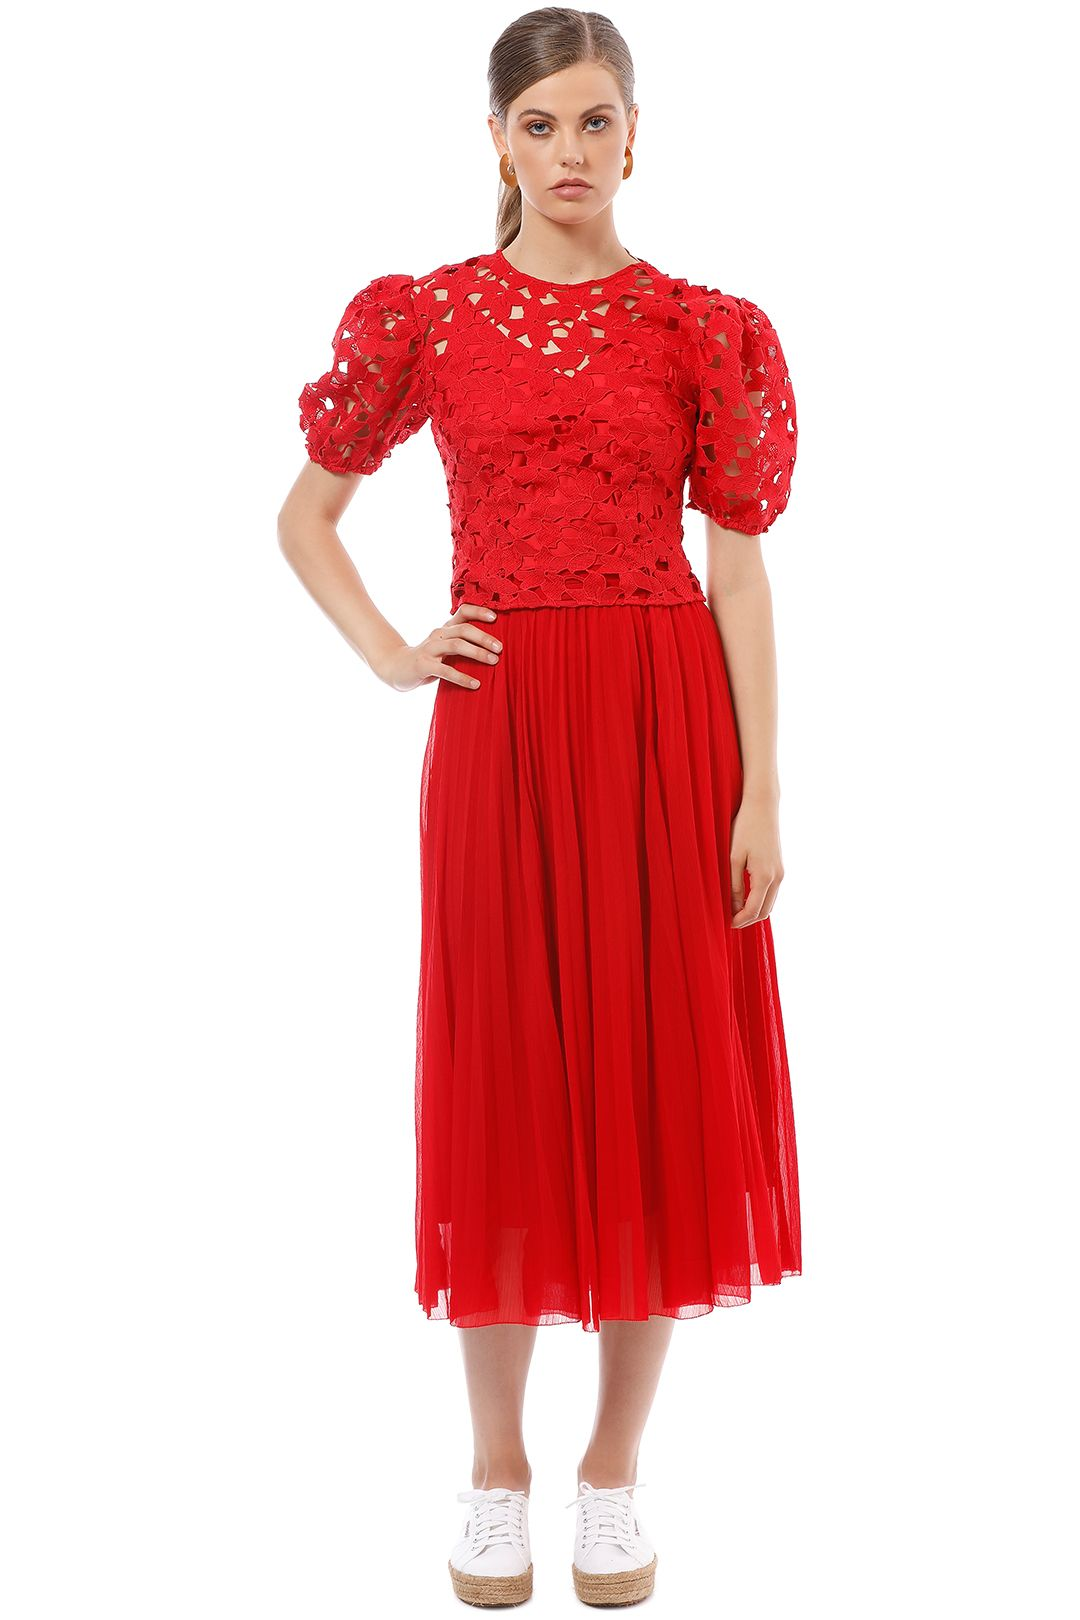 Saba - Cicely Midi Skirt - Red - Front